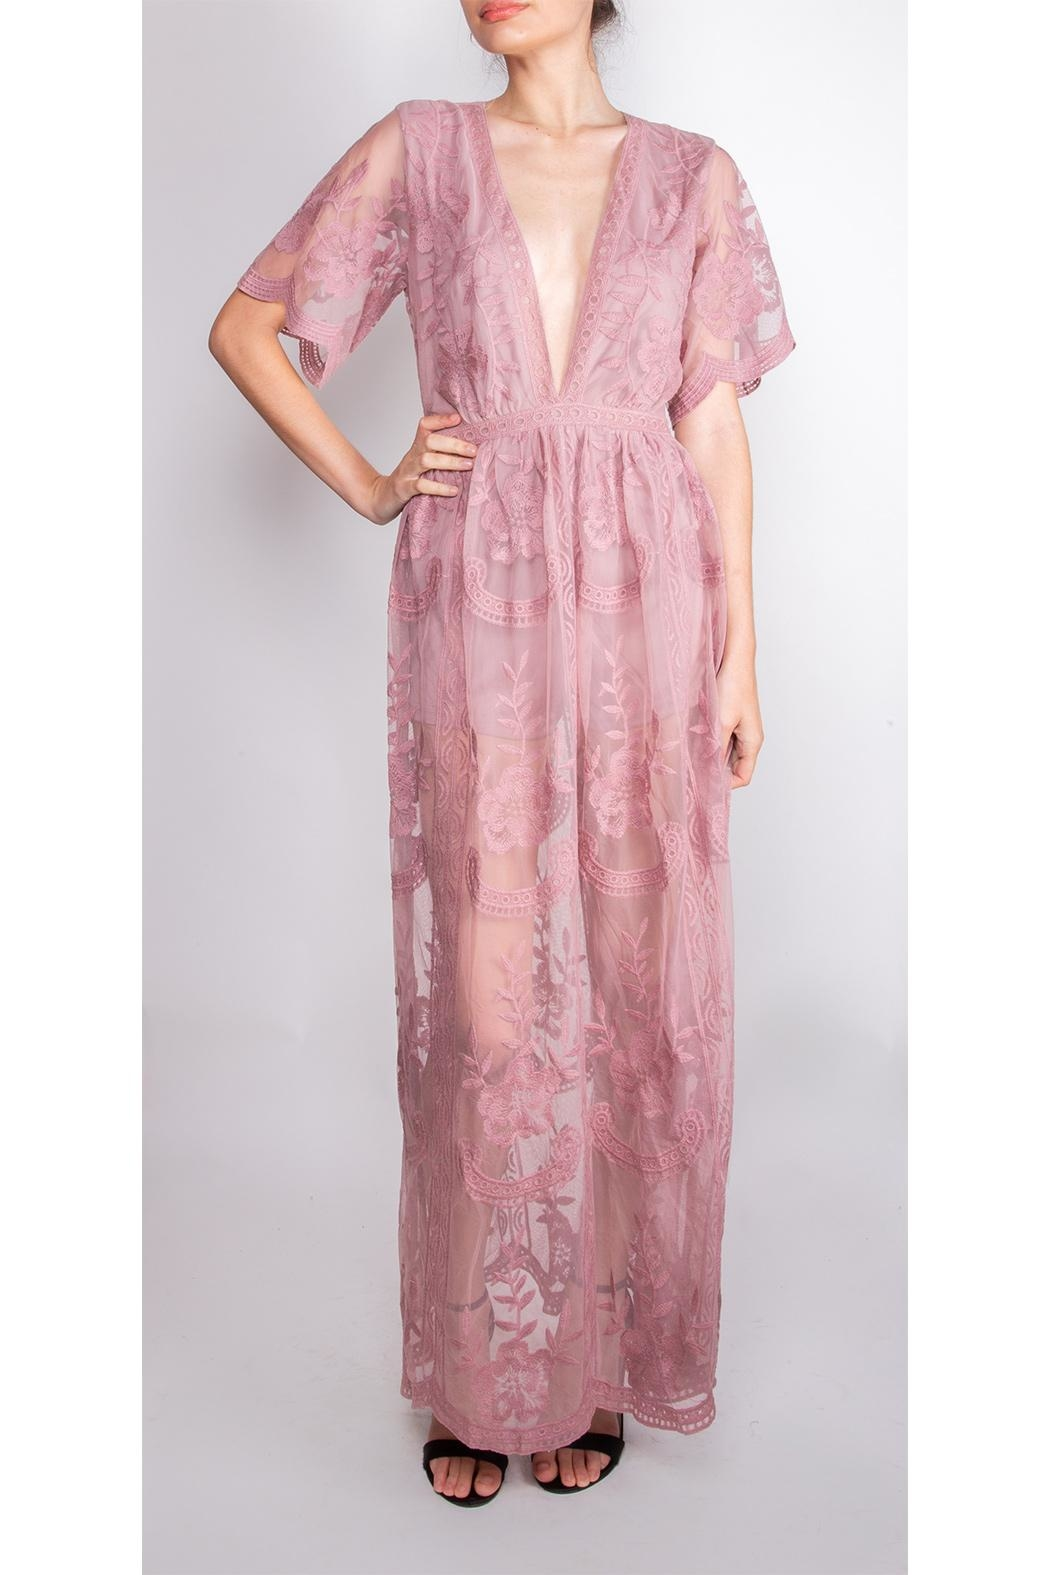 Wild Honey Butterfly Lace Maxi-Dress - Main Image